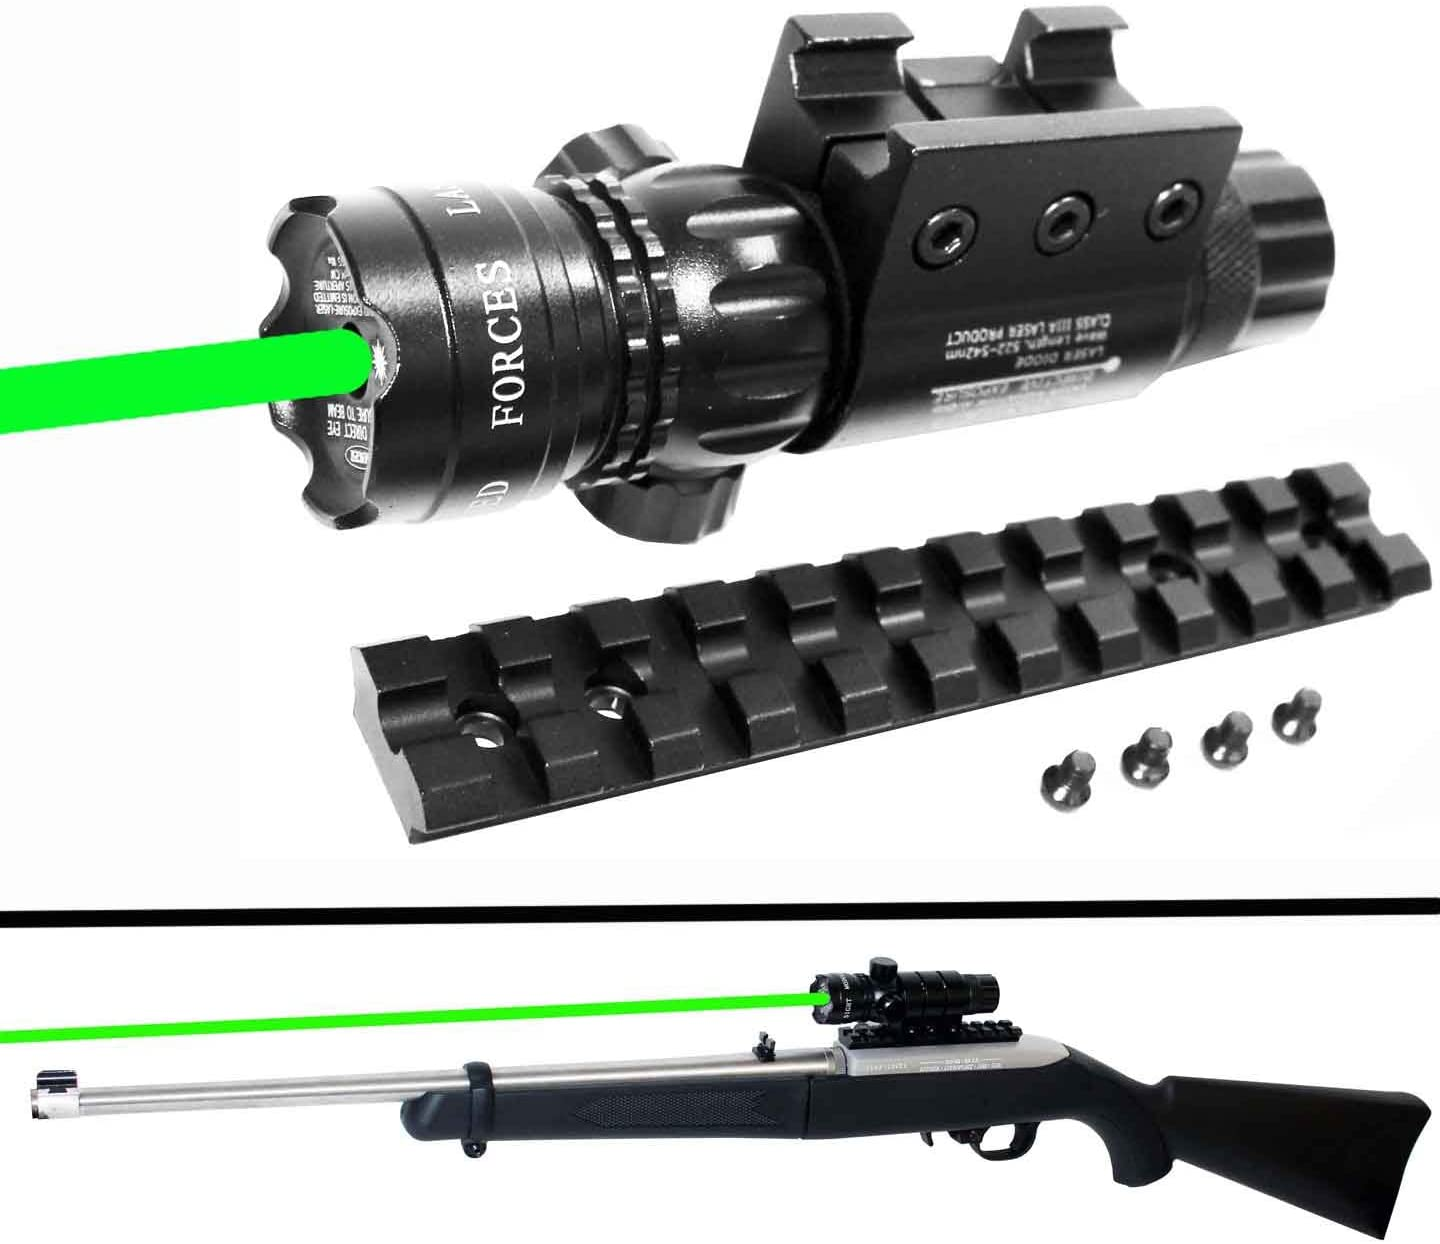 Trinity Weaver Mounted Green Sight with Rail Mount for Ruger 1022, Class IIIA 635nM Less Than 5mW Single Rail Mount.